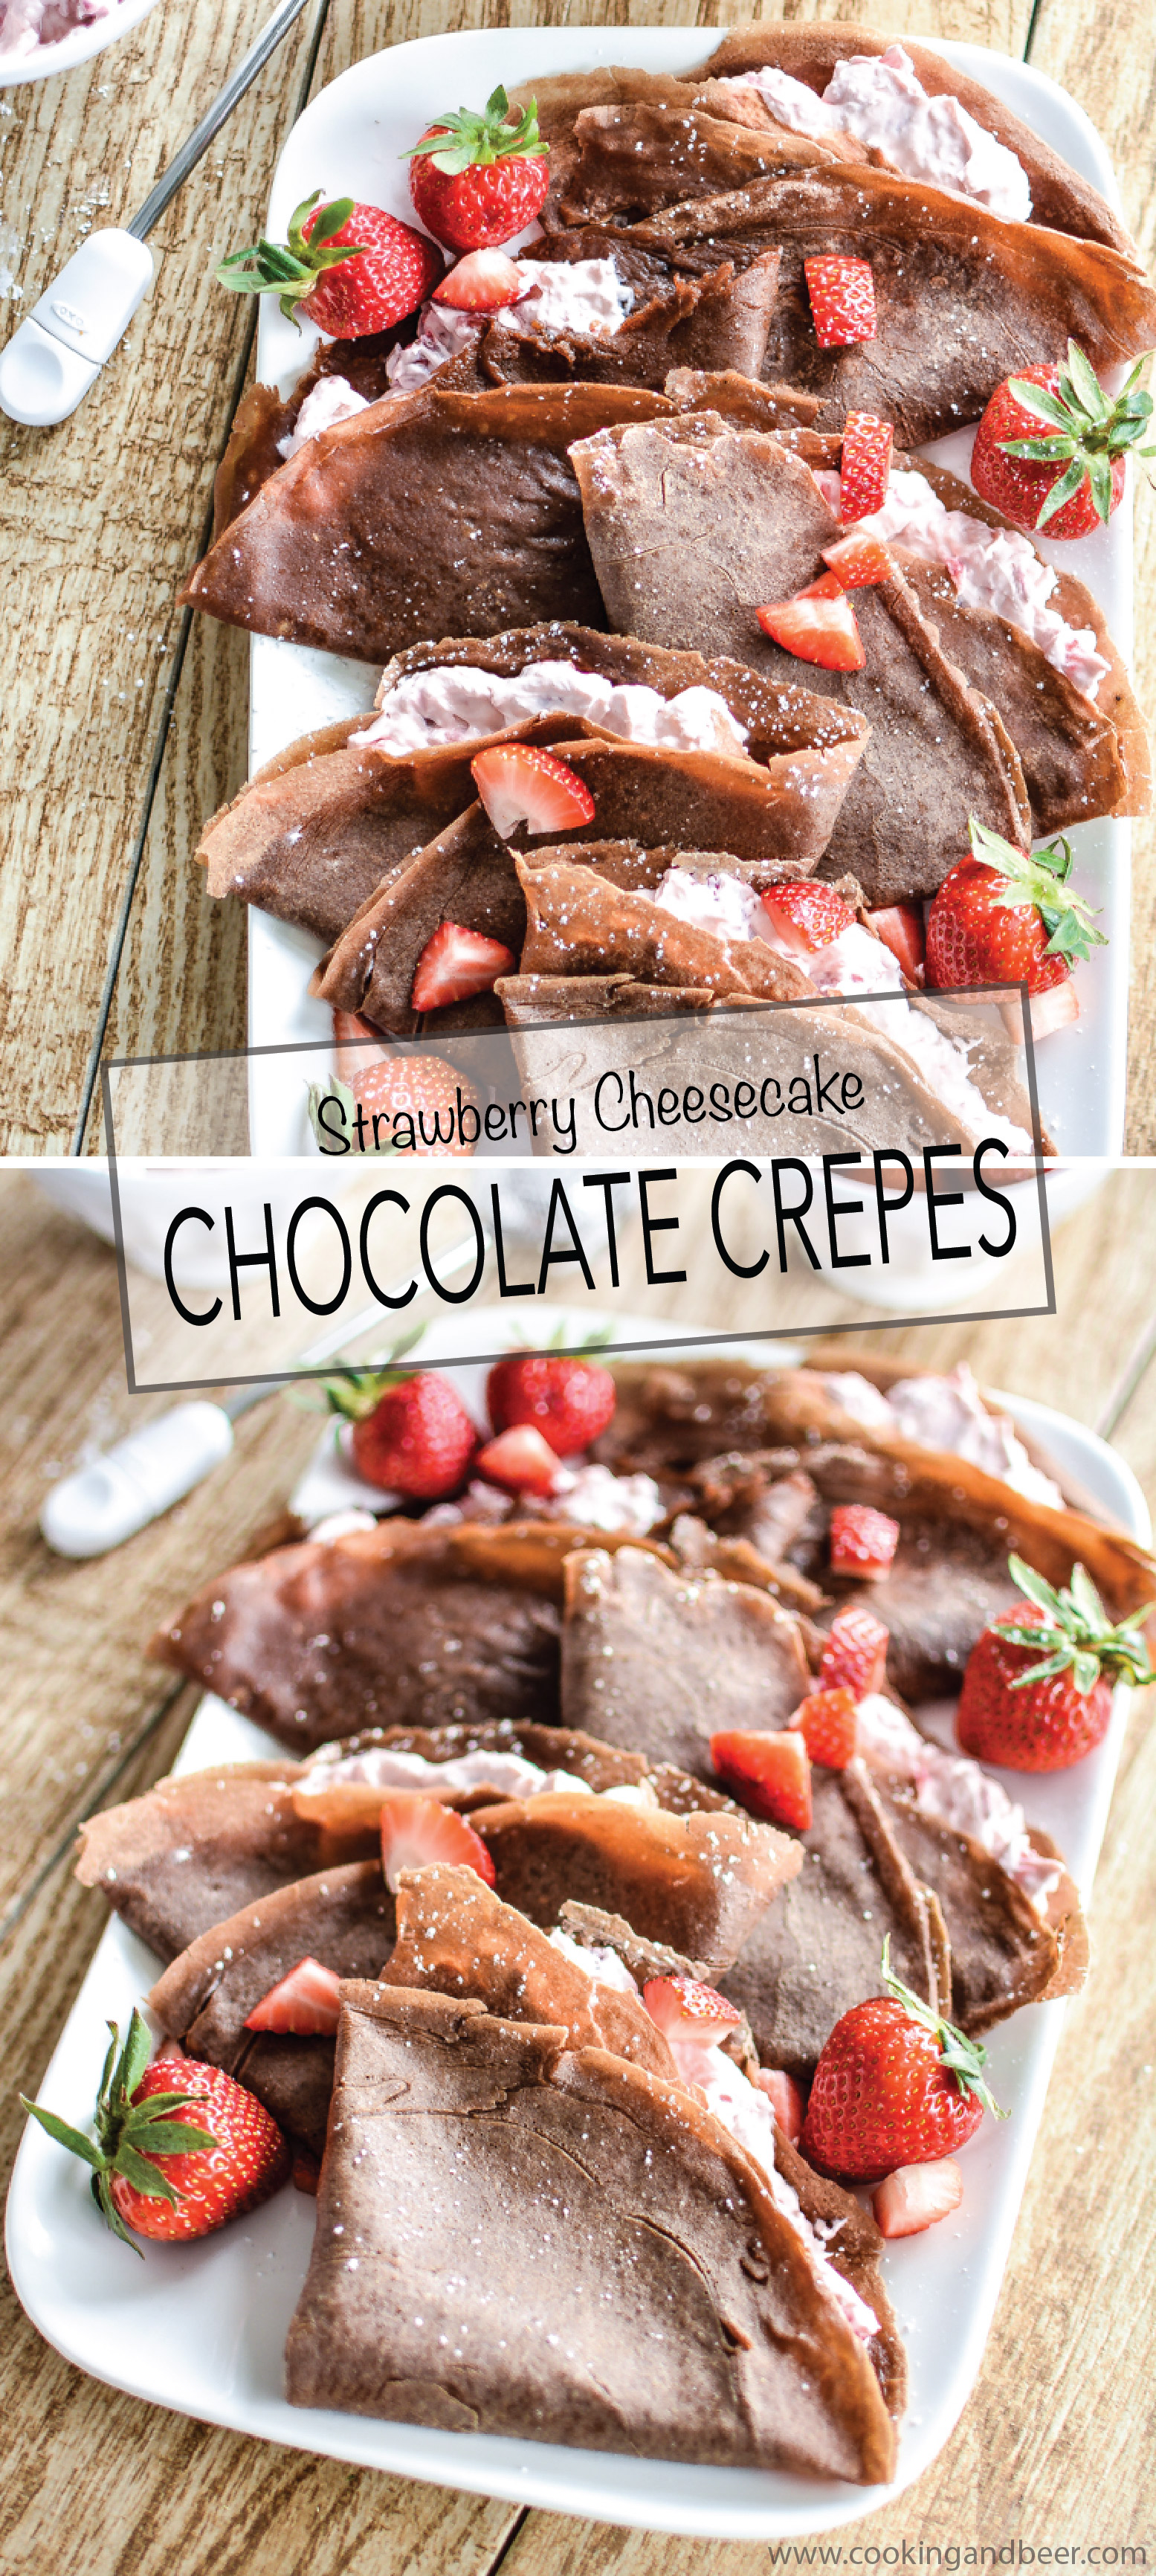 Strawberry Cheesecake Chocolate Crepes are an easy brunch/dessert recipe that celebrates strawberry season! | www.cookingandbeer.com